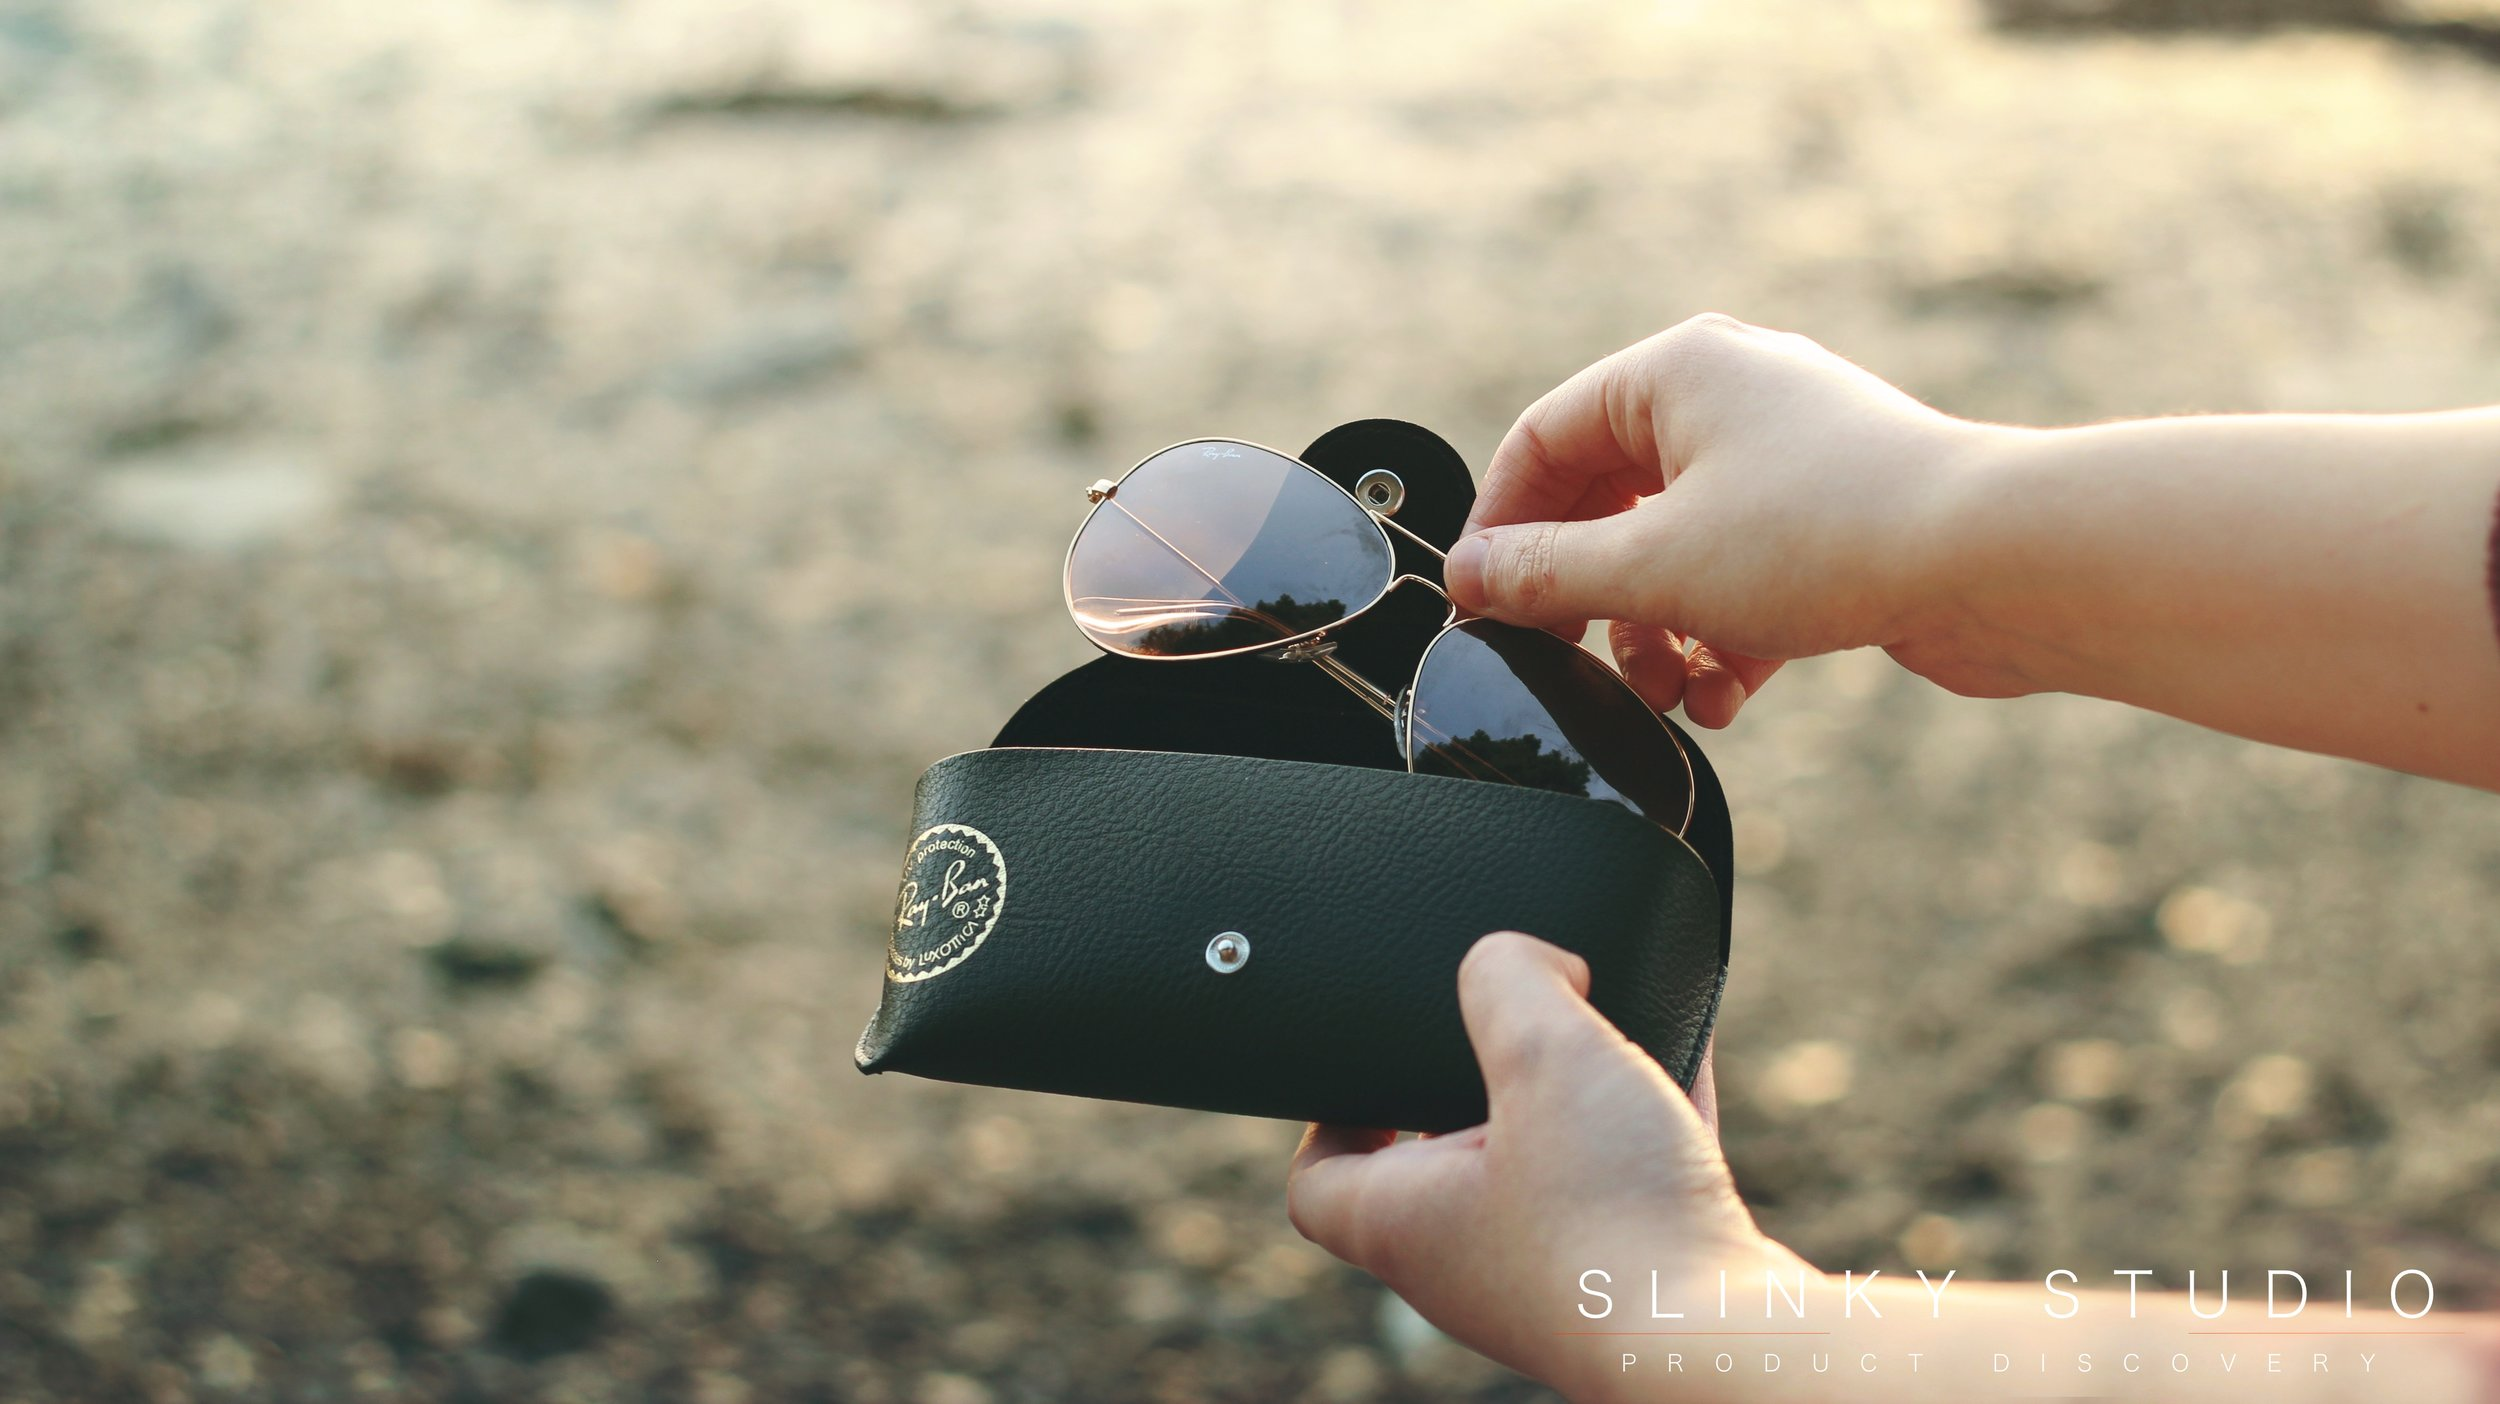 Ray Ban Aviator Sunglasses RB3025 in Black Leather Case.jpg